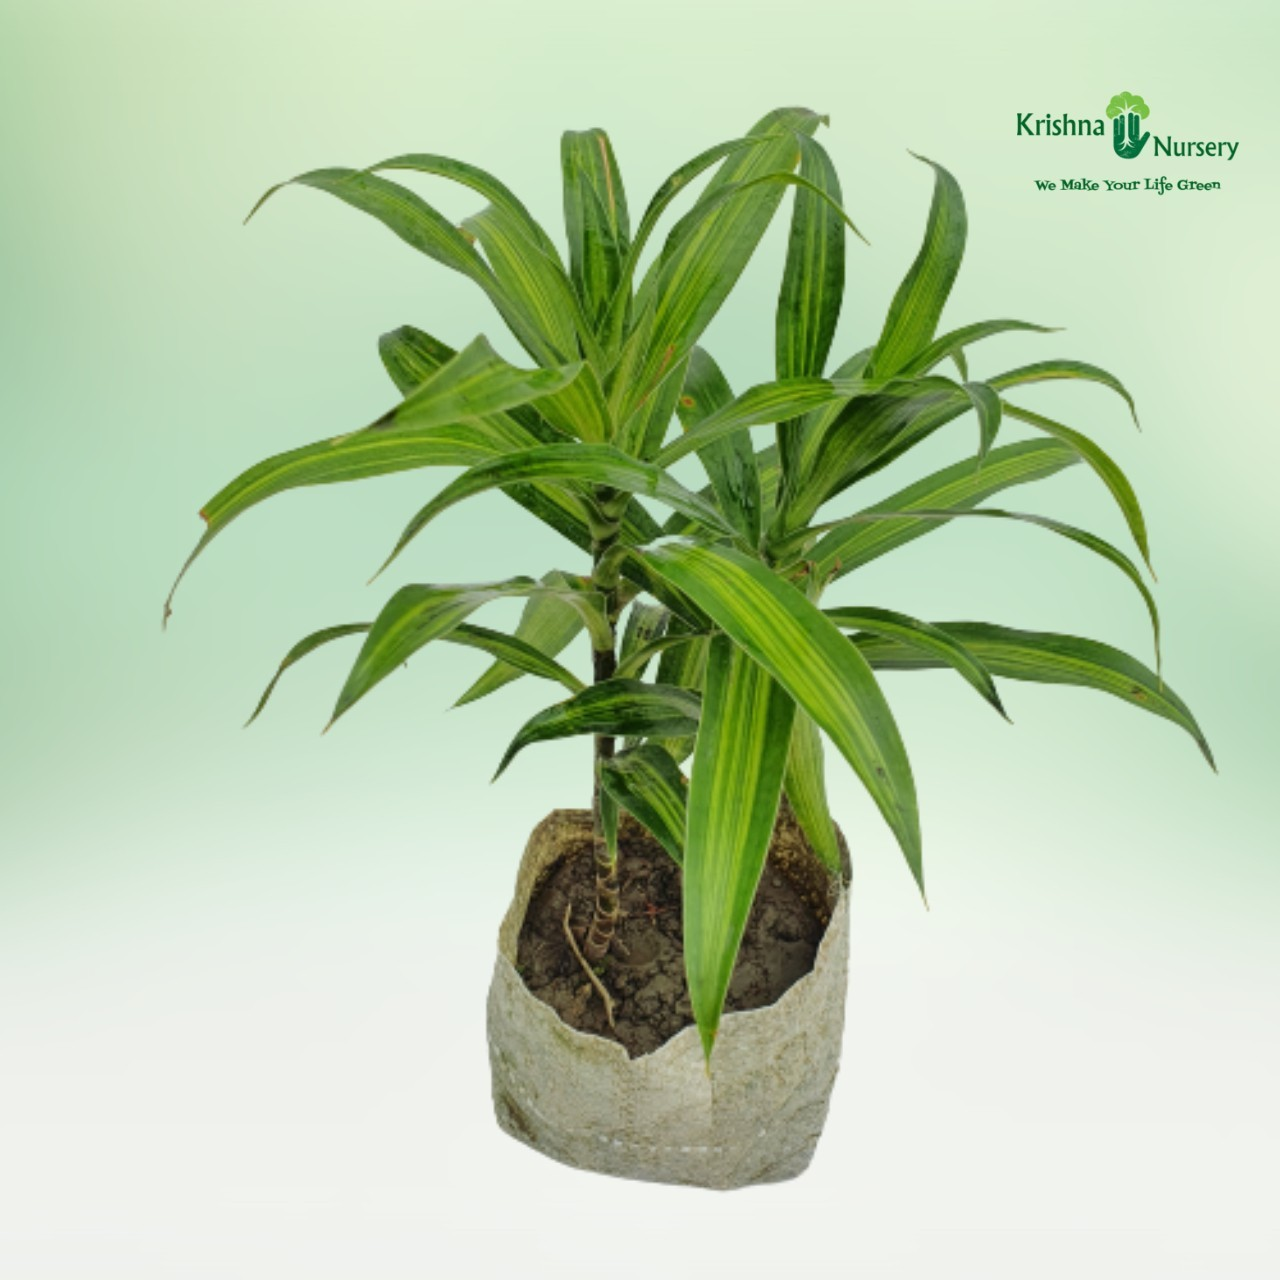 Green Song Of India Plant - 4 inch - Poly Bag